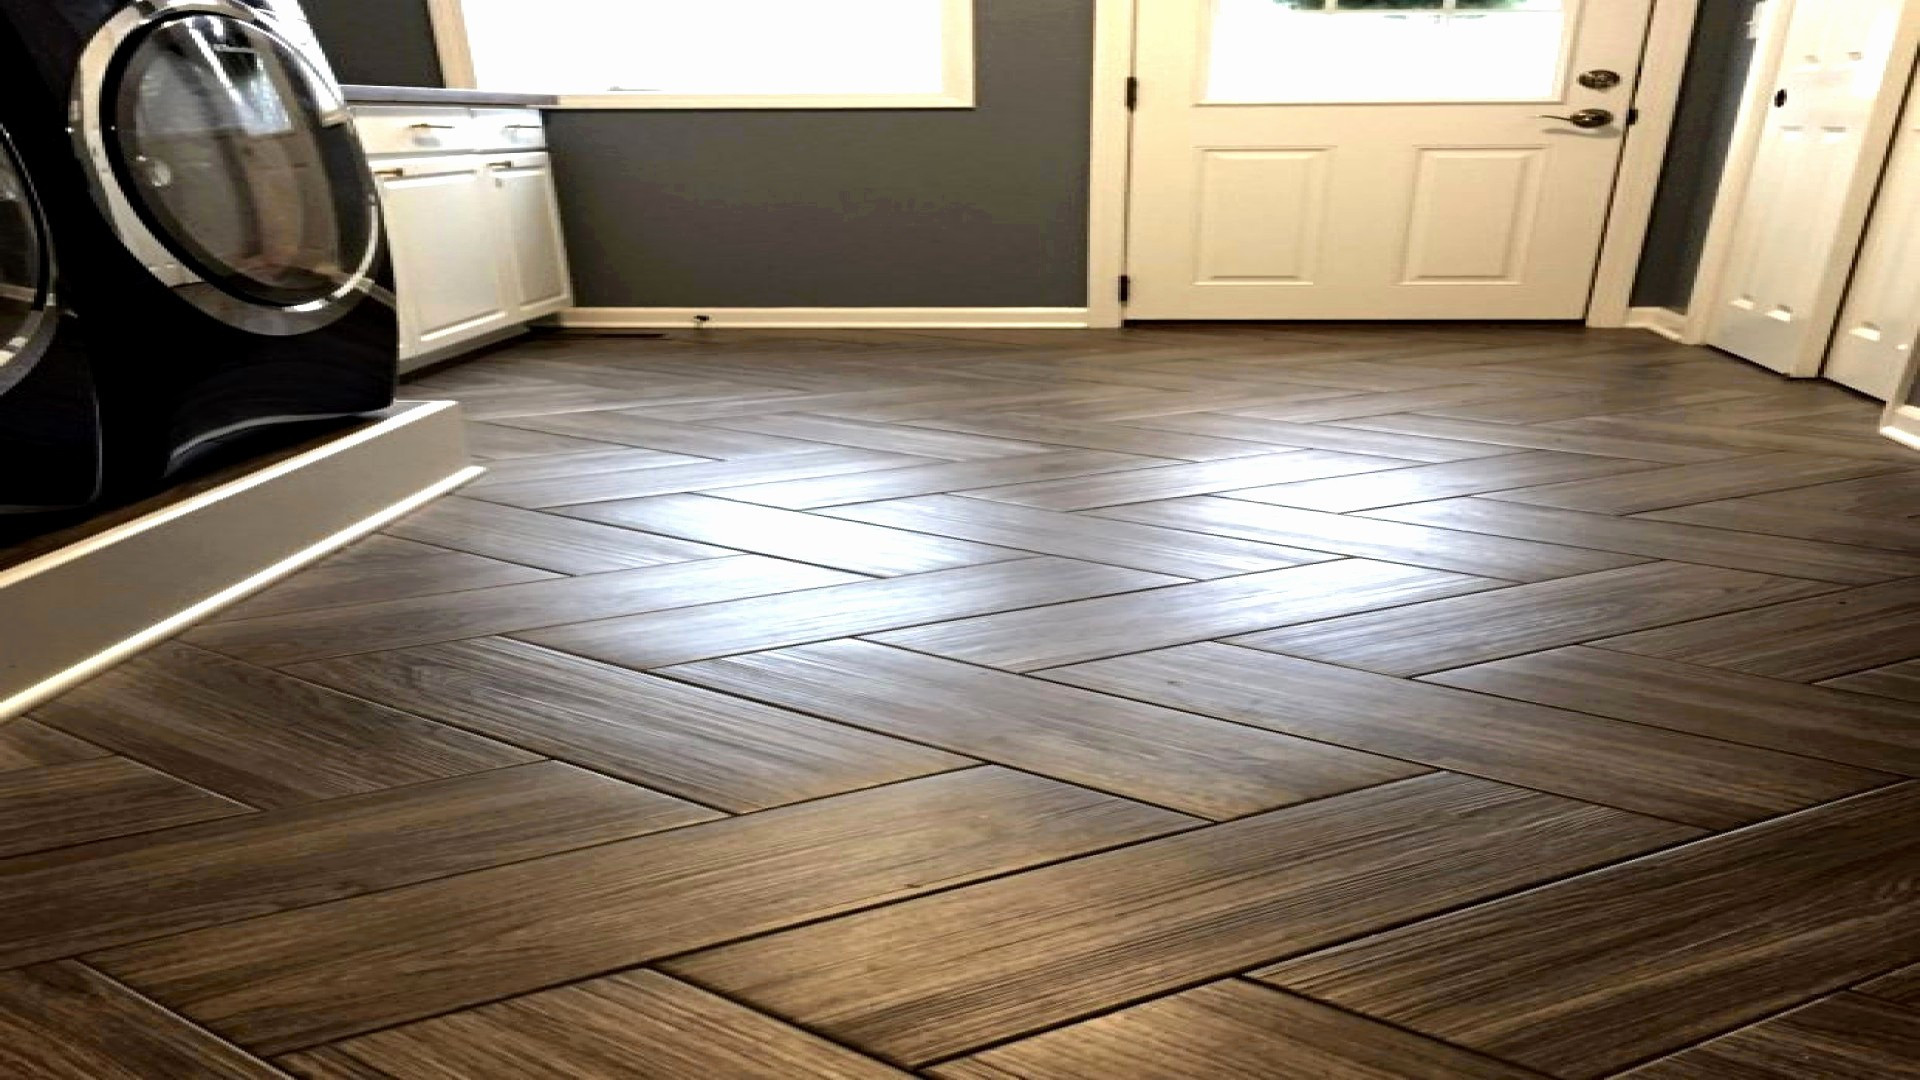 hickory hardwood flooring prices of 19 awesome hardwood flooring for sale photograph dizpos com inside hardwood flooring for sale best of 52 luxury wood flooring sale 52 s photograph